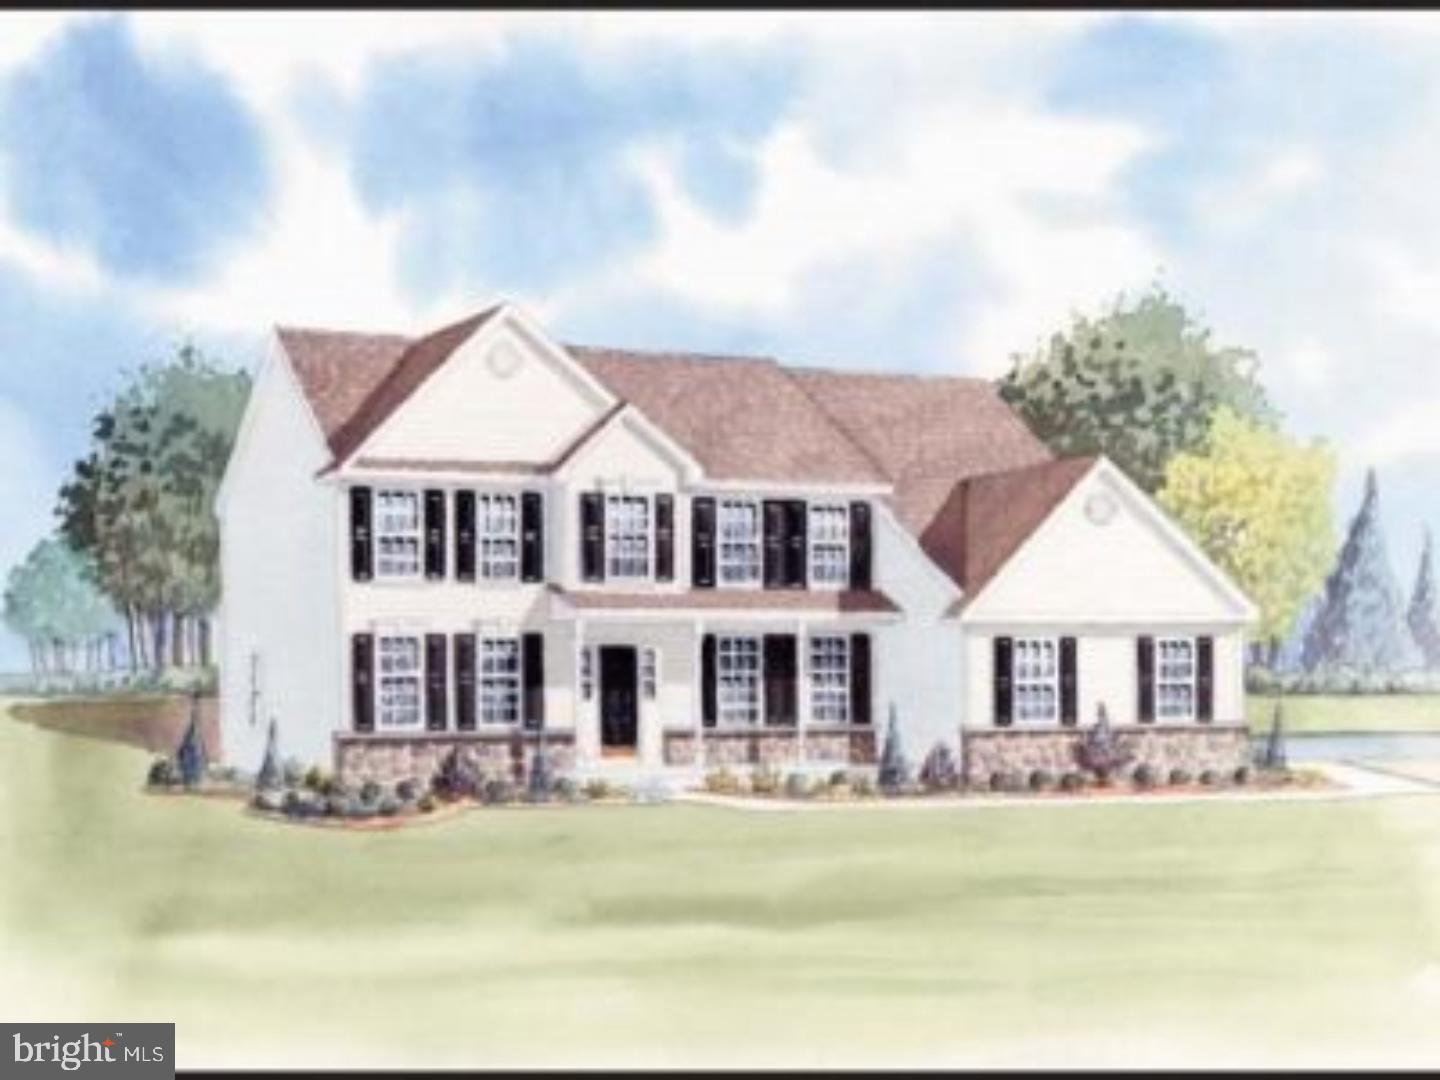 Greenspring model- to be built. Large eat-in kitchen with granite counter tops, 2 story foyer and familyroom, formal living room and dining room. The first floor study can easily be converted to an additional bedroom if needed. All bedrooms are generously sized with several different layouts for the master bedroom suite. All home sites are half acre lots with side turned garages and a stone water table.